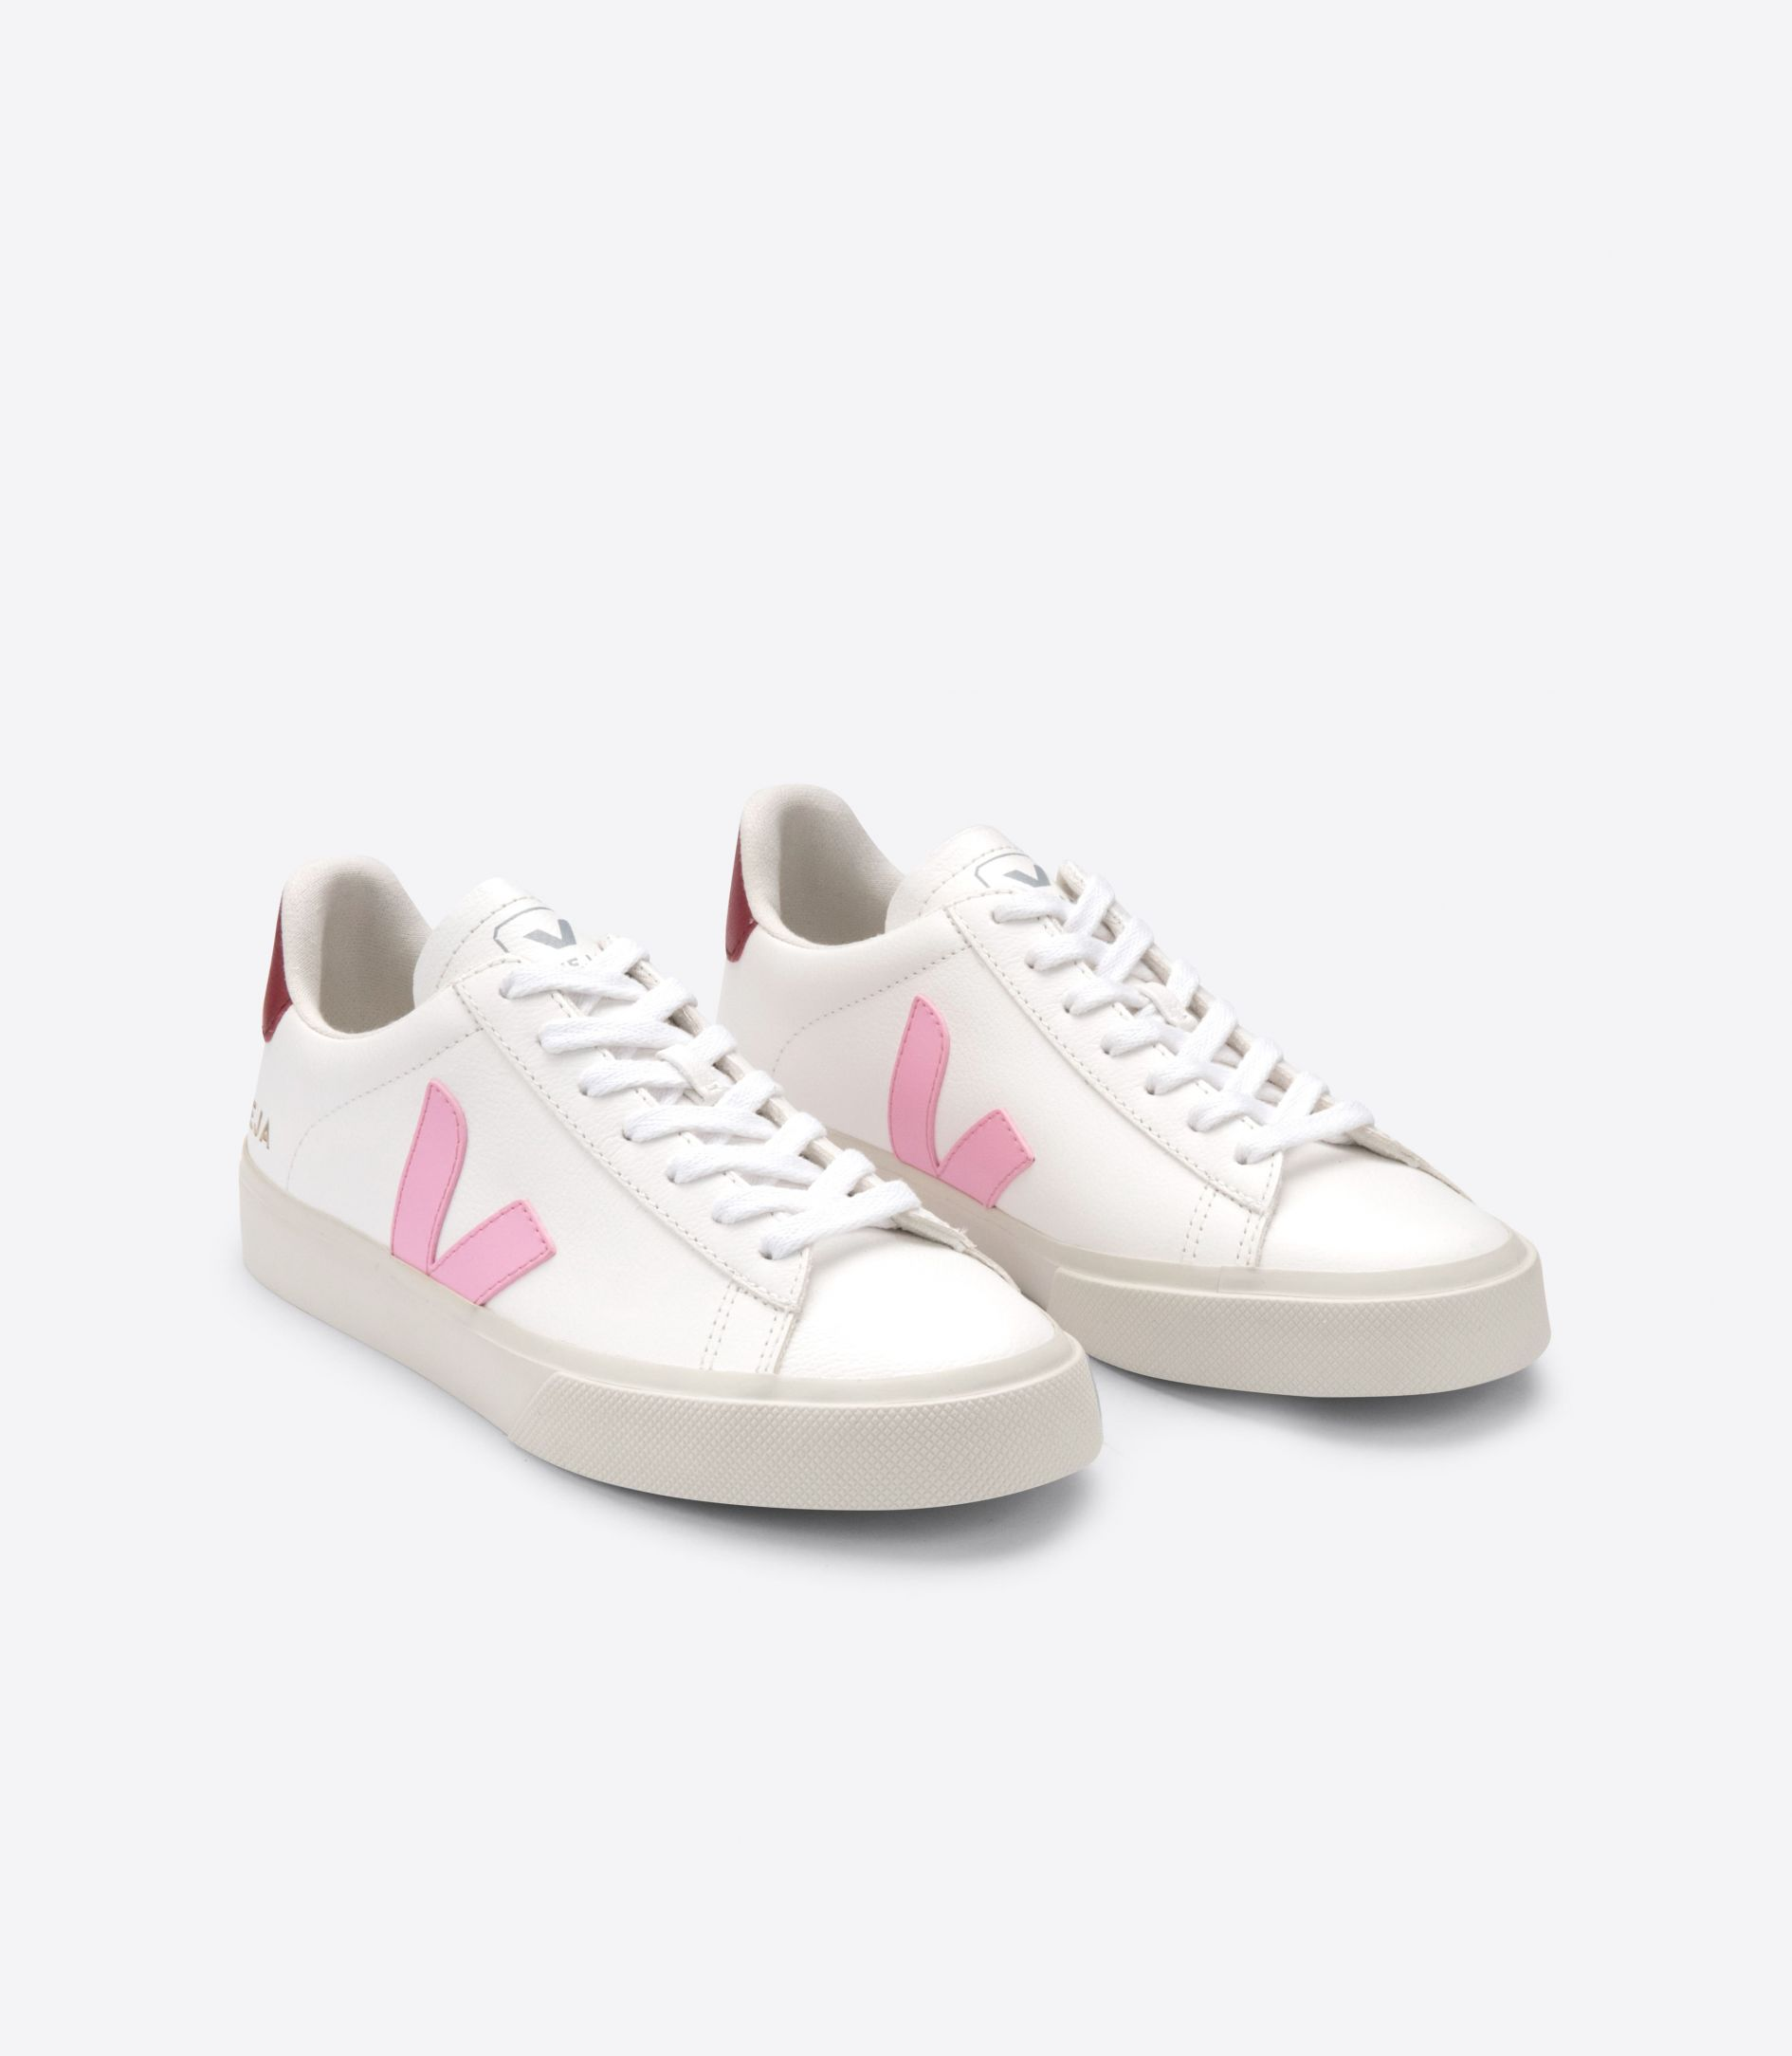 VEJA CAMPO WHITE GUIMAUVE & MARSALA LEATHER SNEAKERS